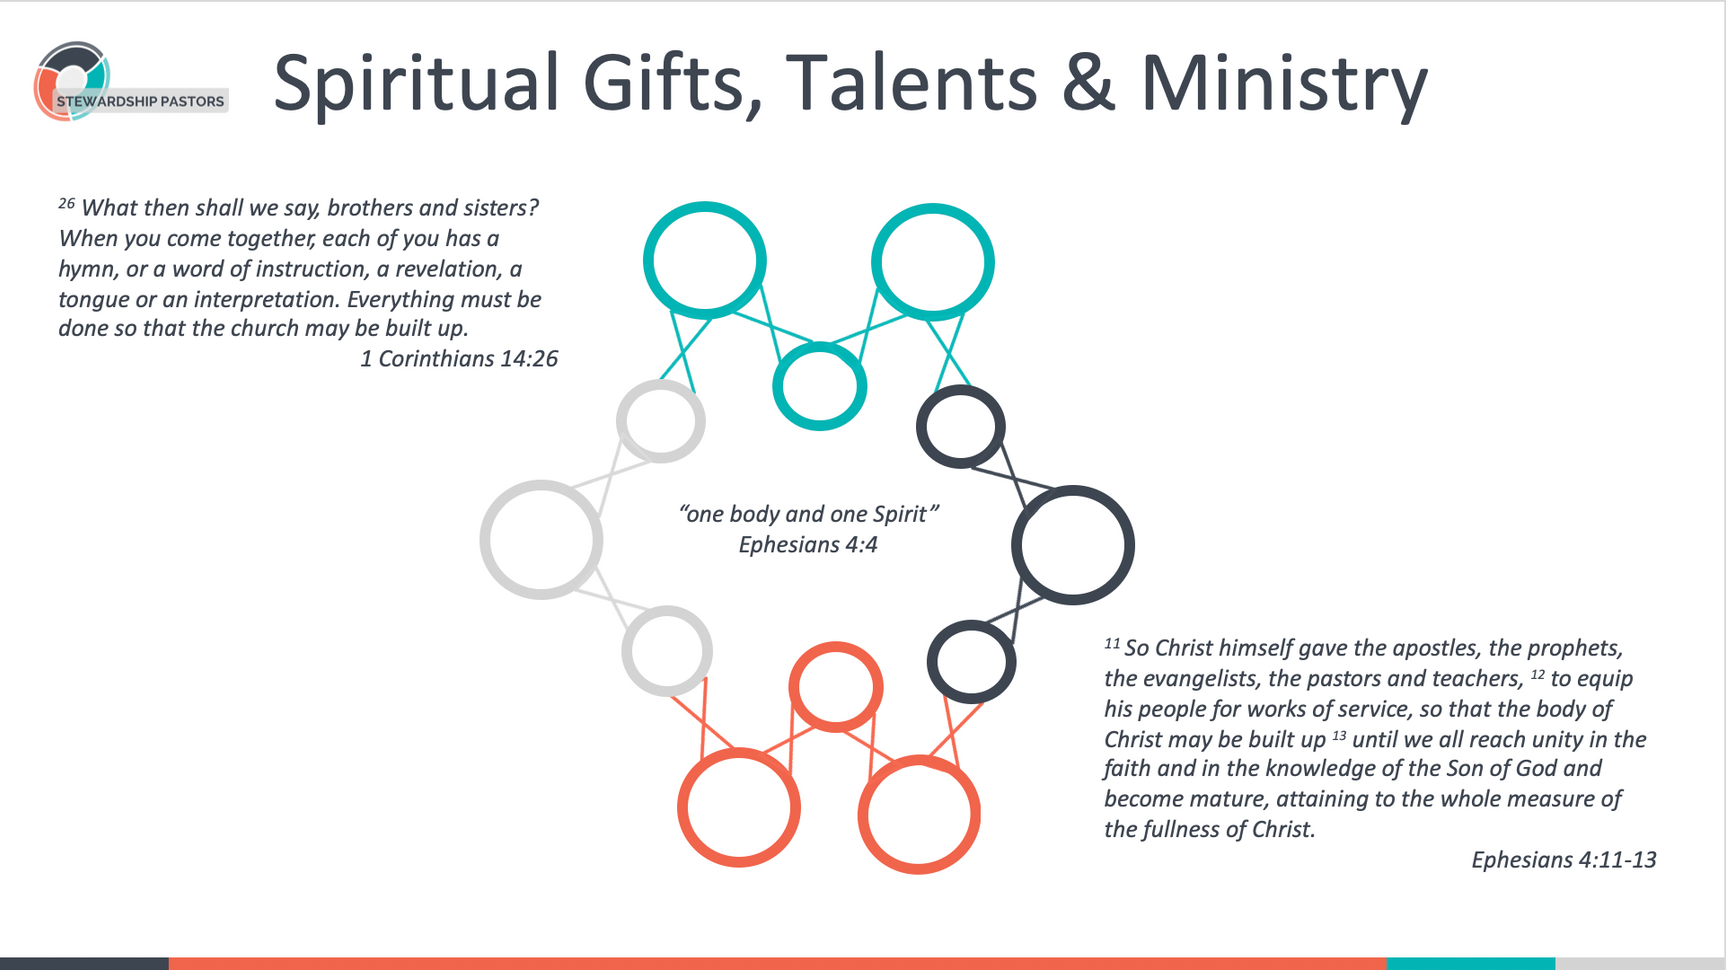 Spiritual Gifts, Talents & Ministry